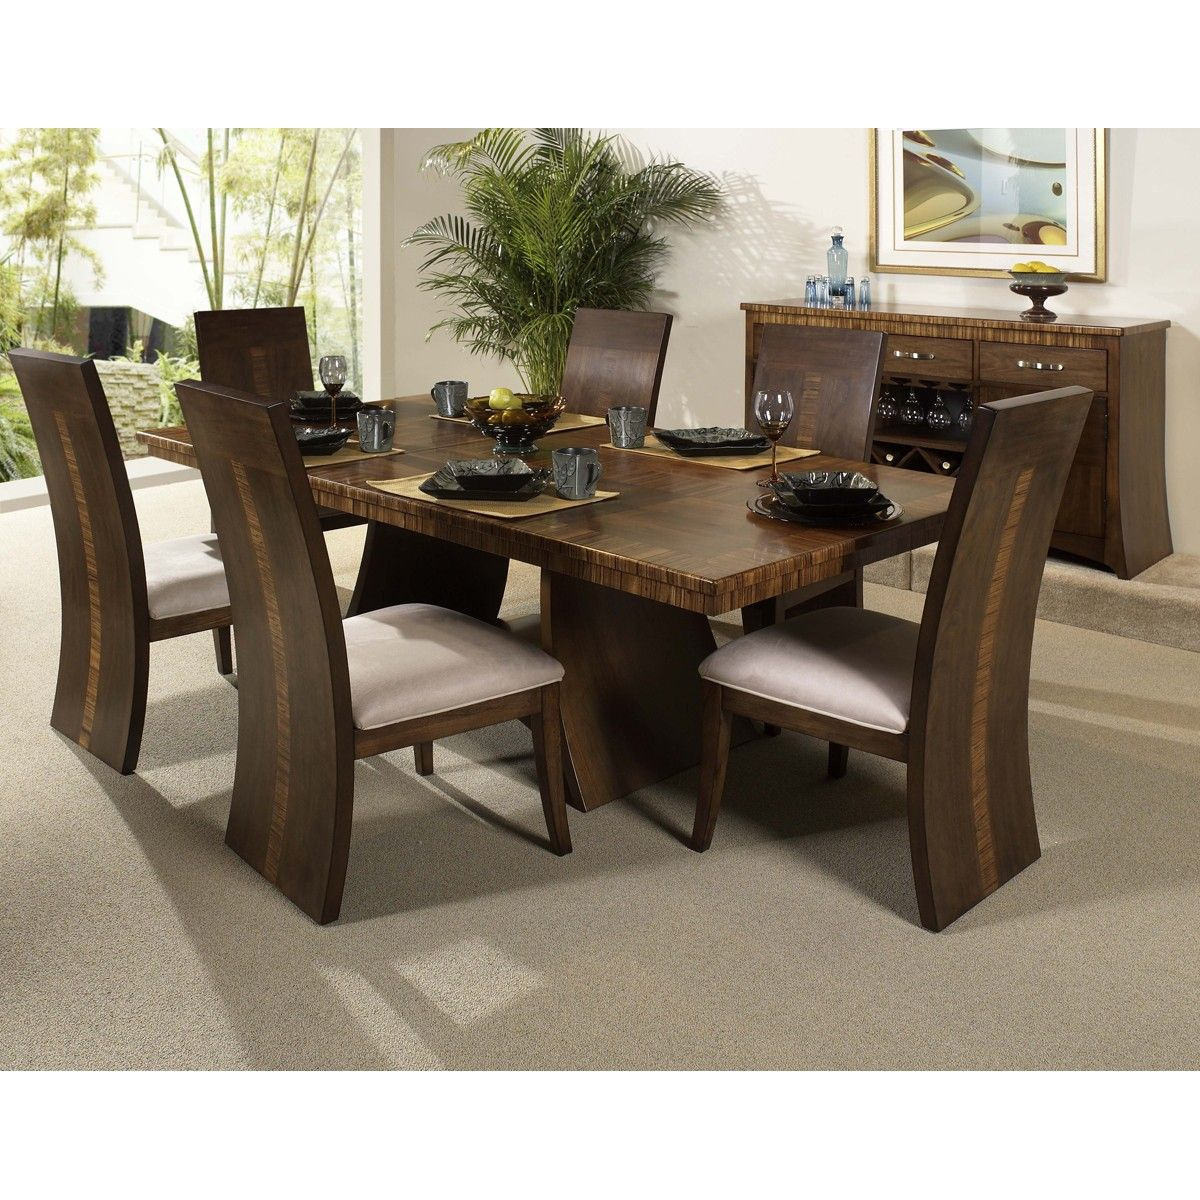 magnificent-furniture-modern-dining-set-design-with-the-  sc 1 st  Pinterest : wooden dining table set designs - pezcame.com